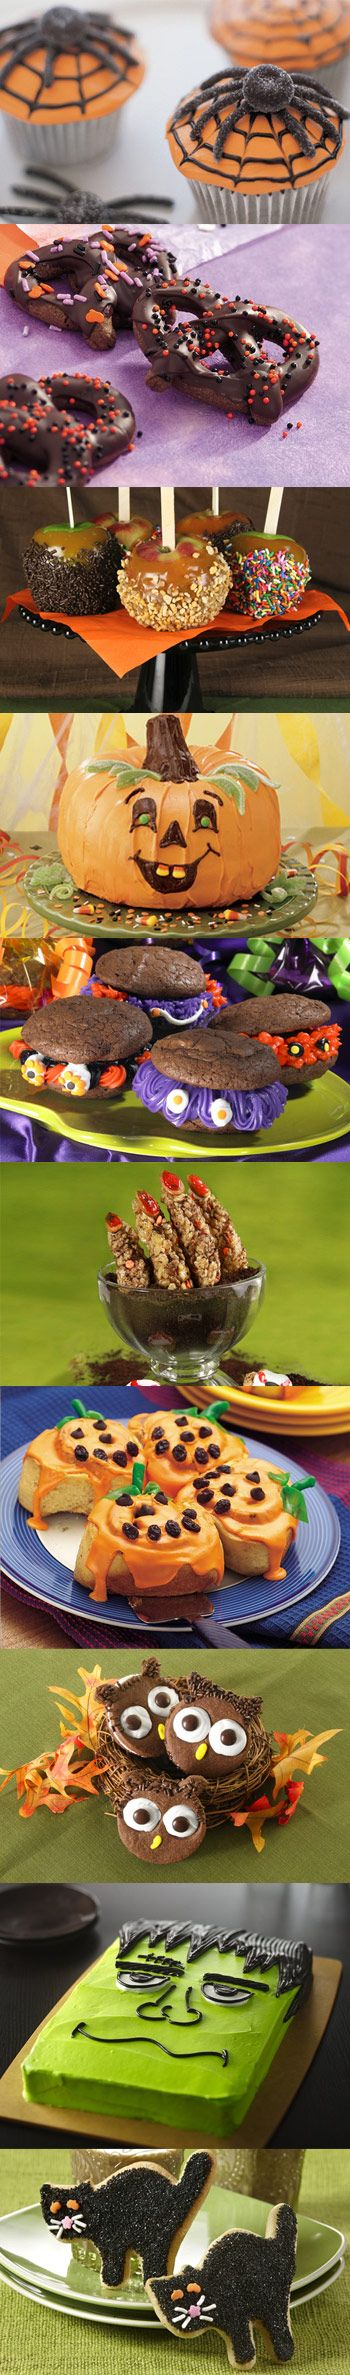 Halloween party treats!